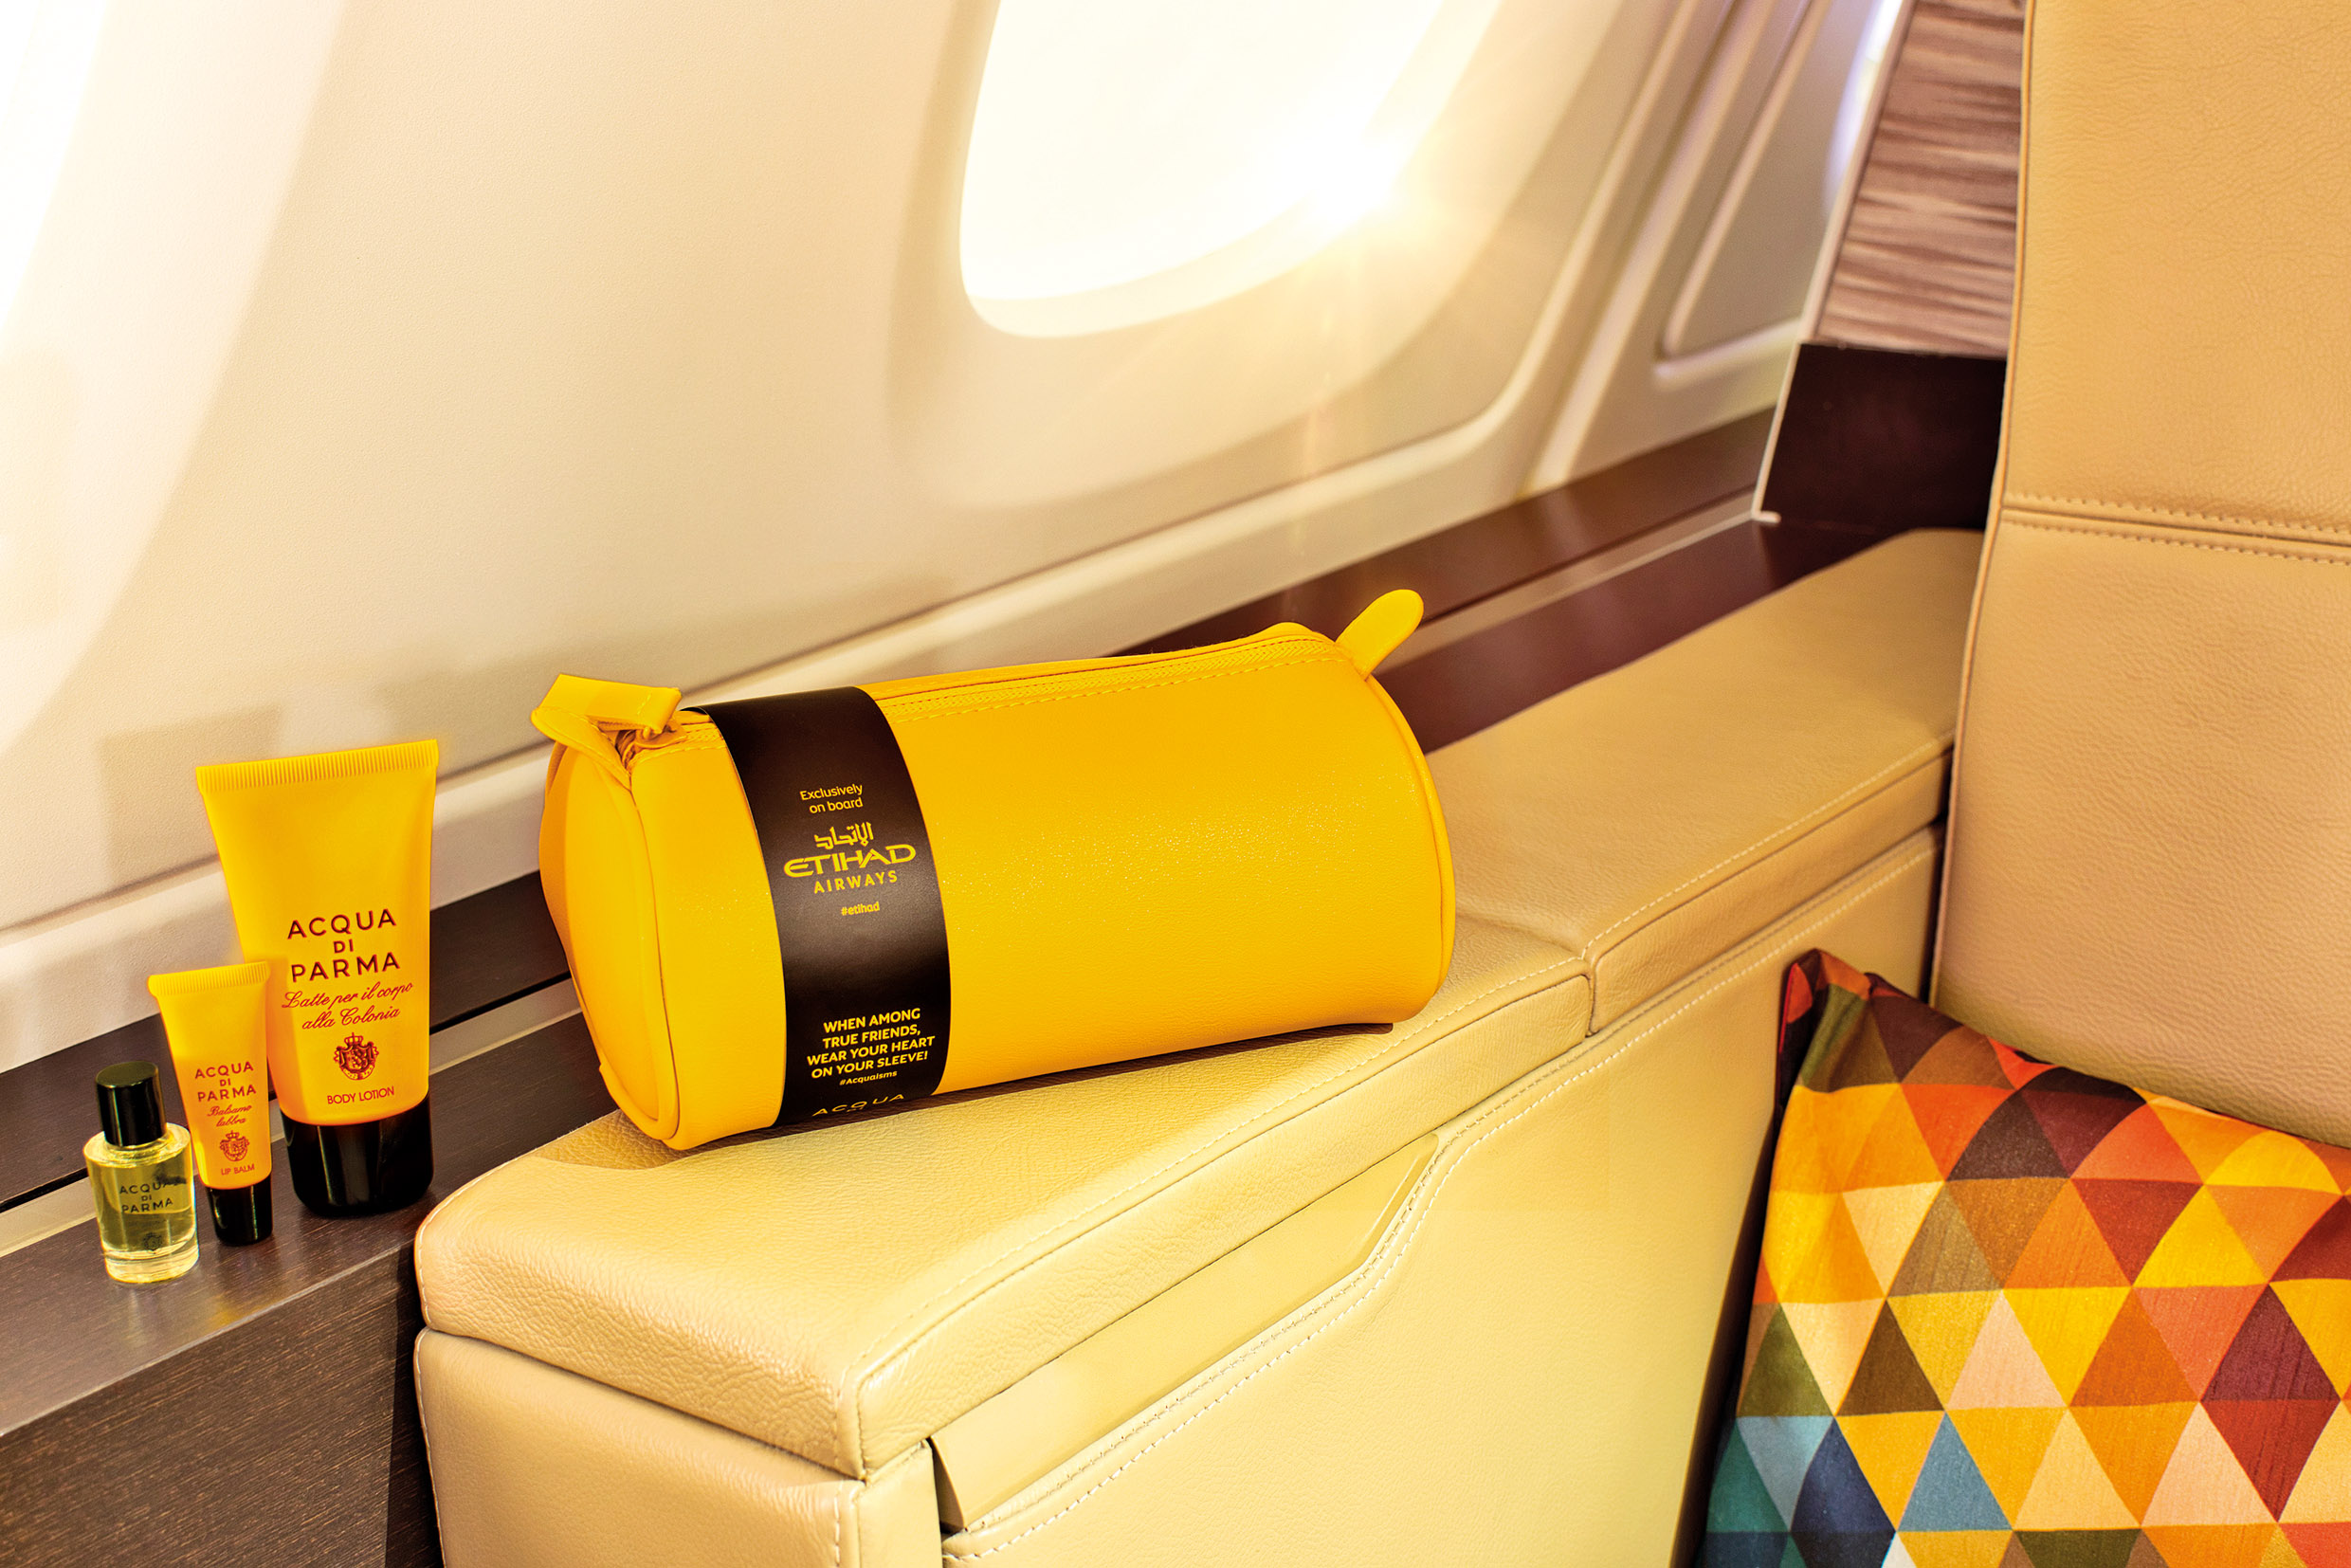 The bag in the characteristic yellow shade.